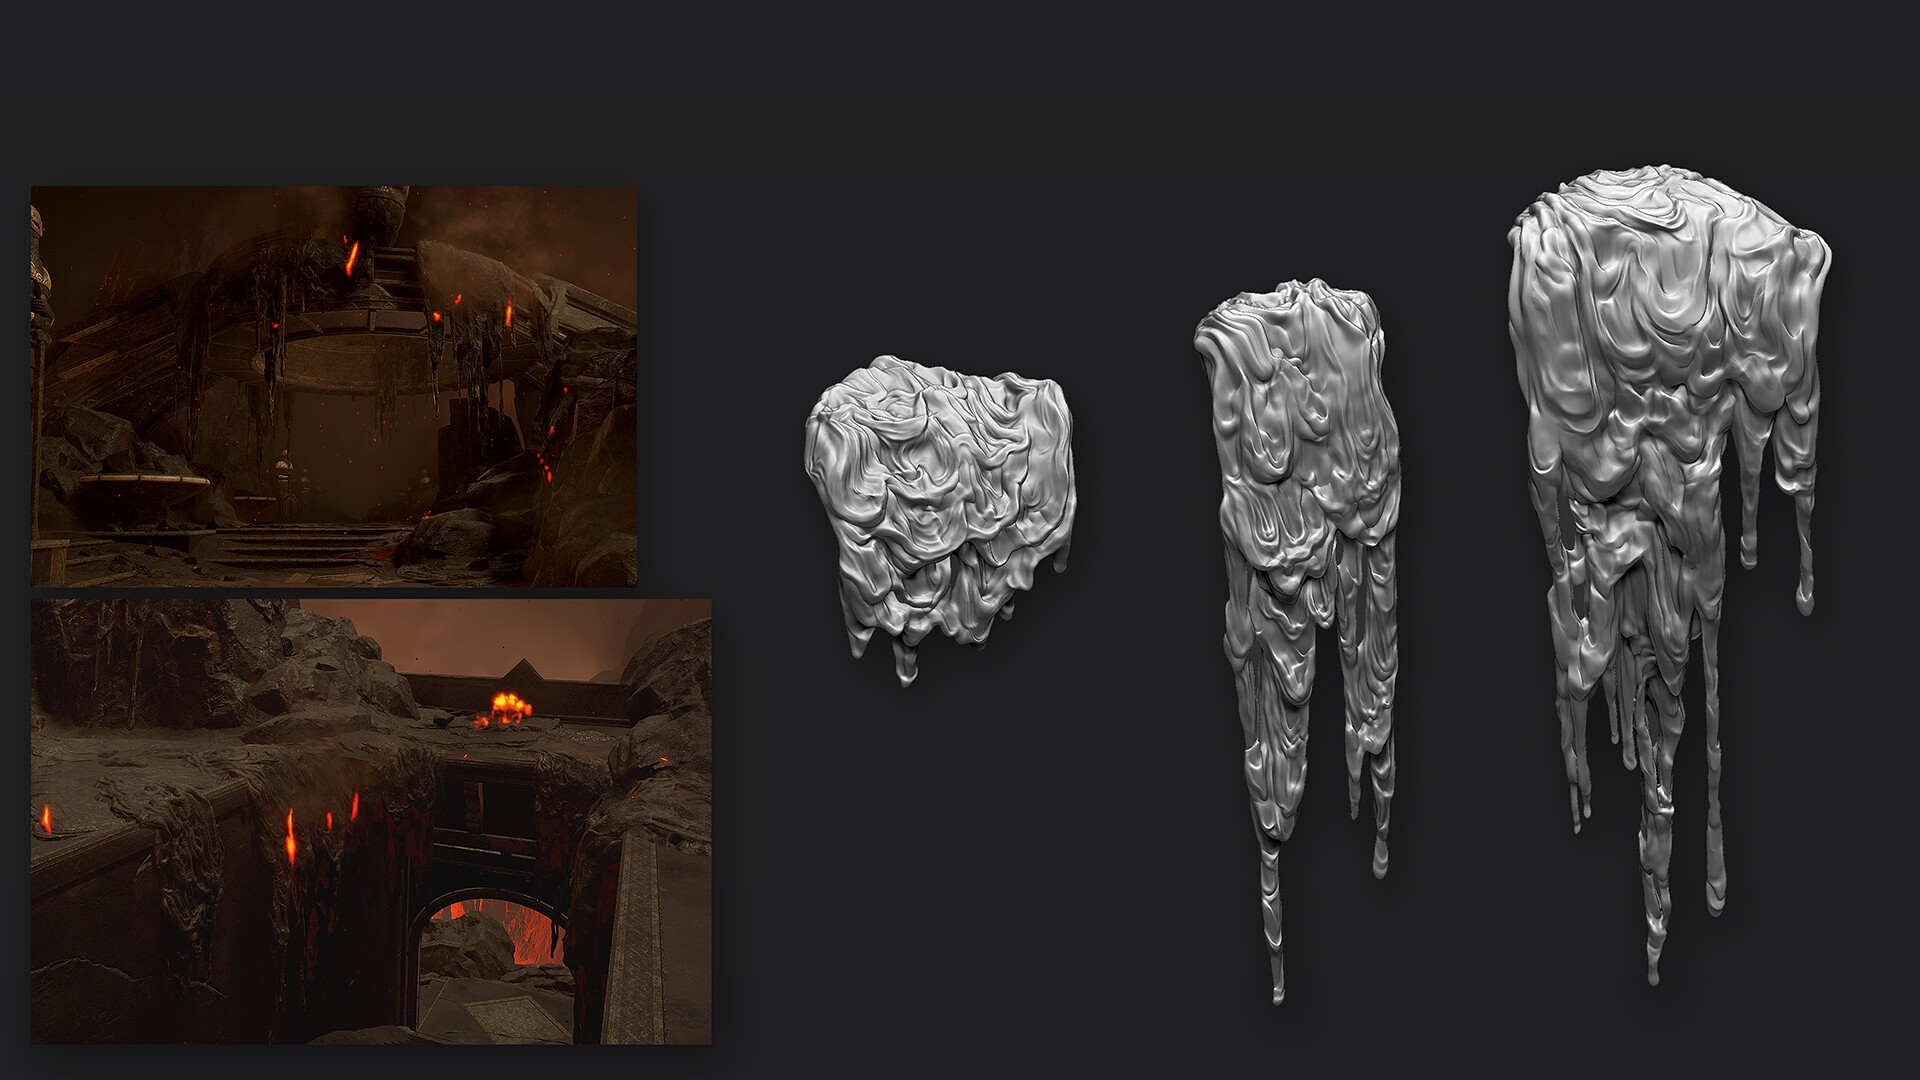 Dripping lava sculpting work